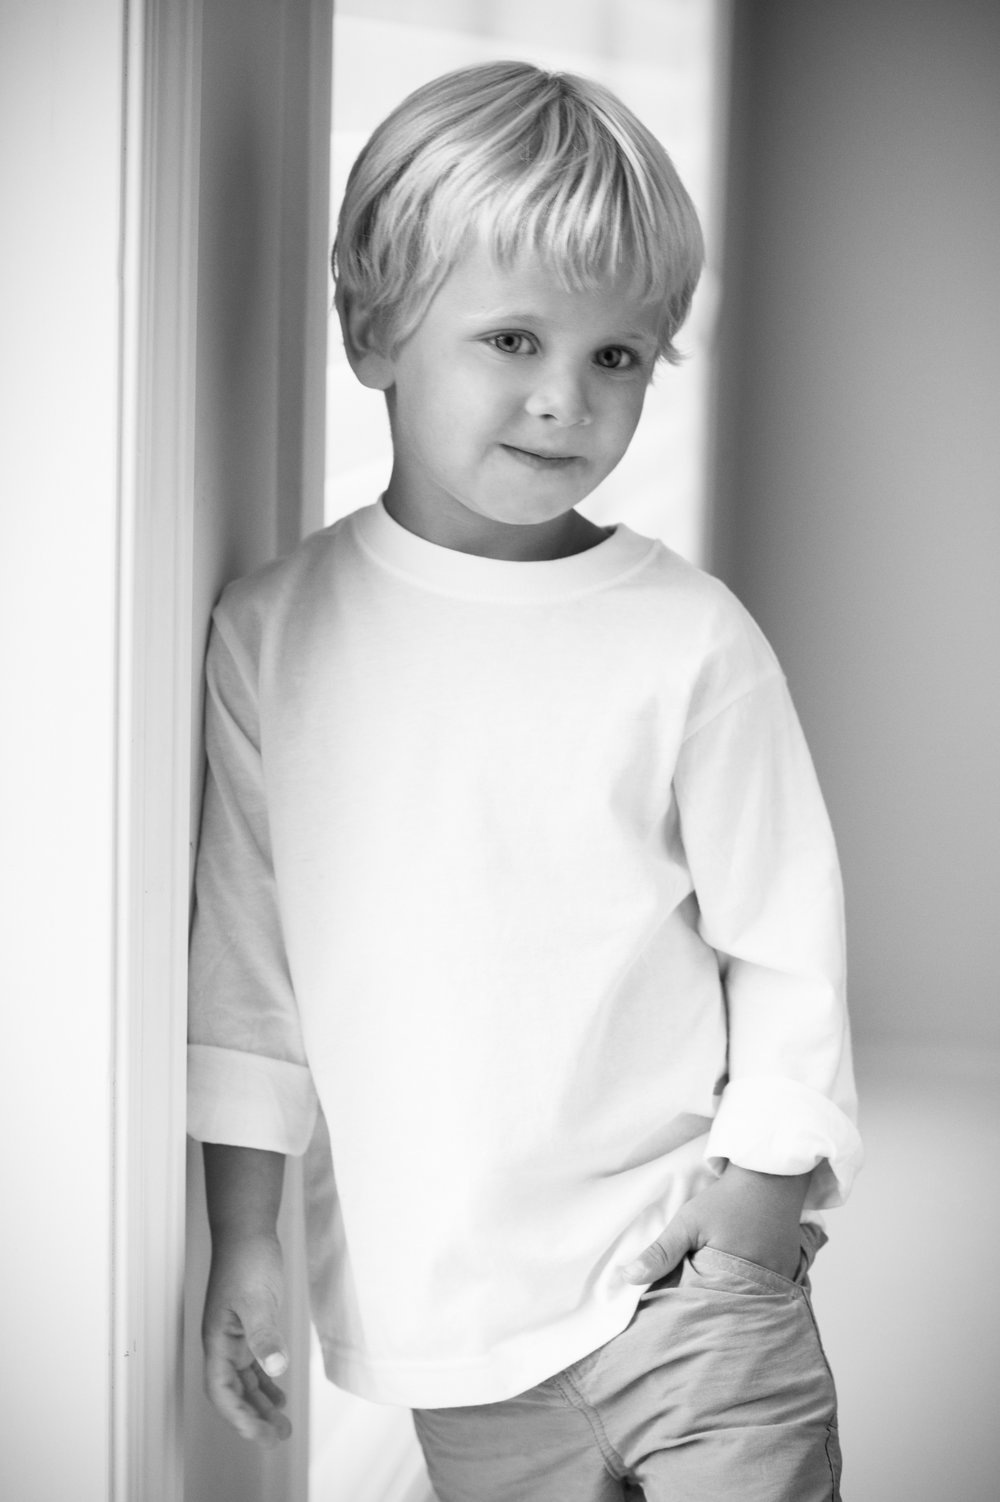 Marta-Hewson-Lifestyle-portrait-little-boy-leaning-against-wall.jpg